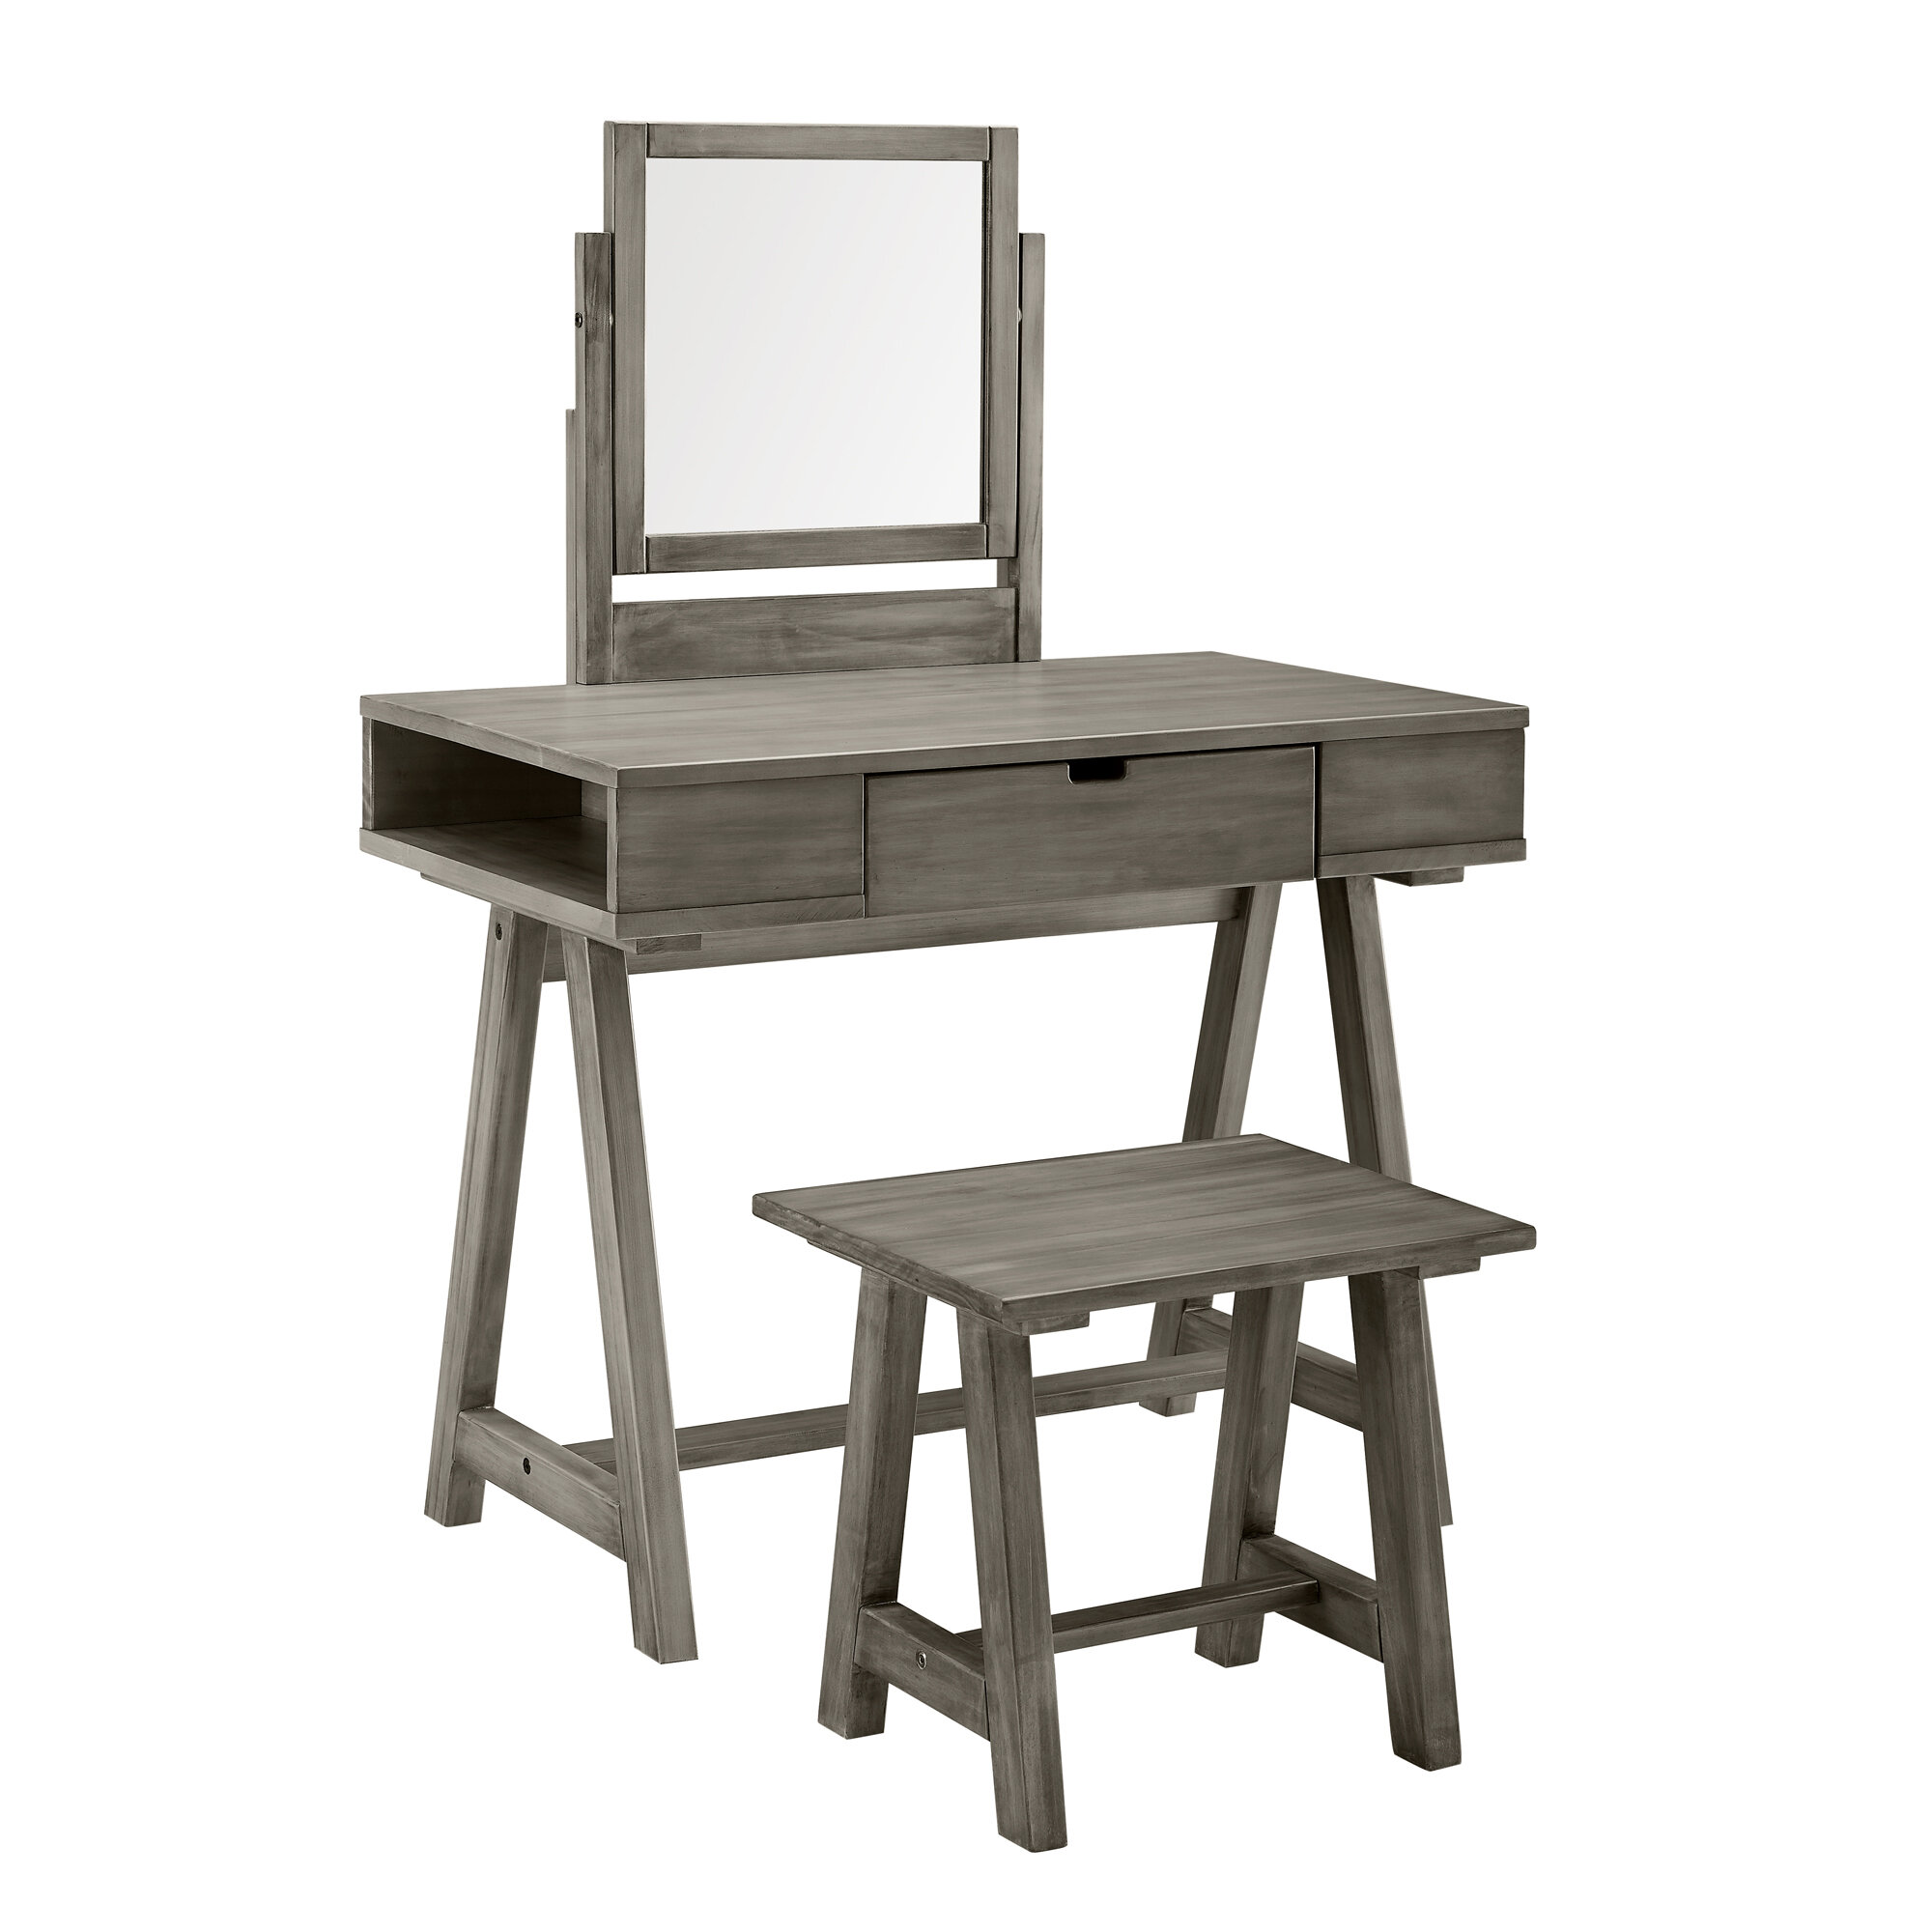 Gracie Oaks Maximilian Farmhouse Vanity Set With Mirror Reviews Wayfair